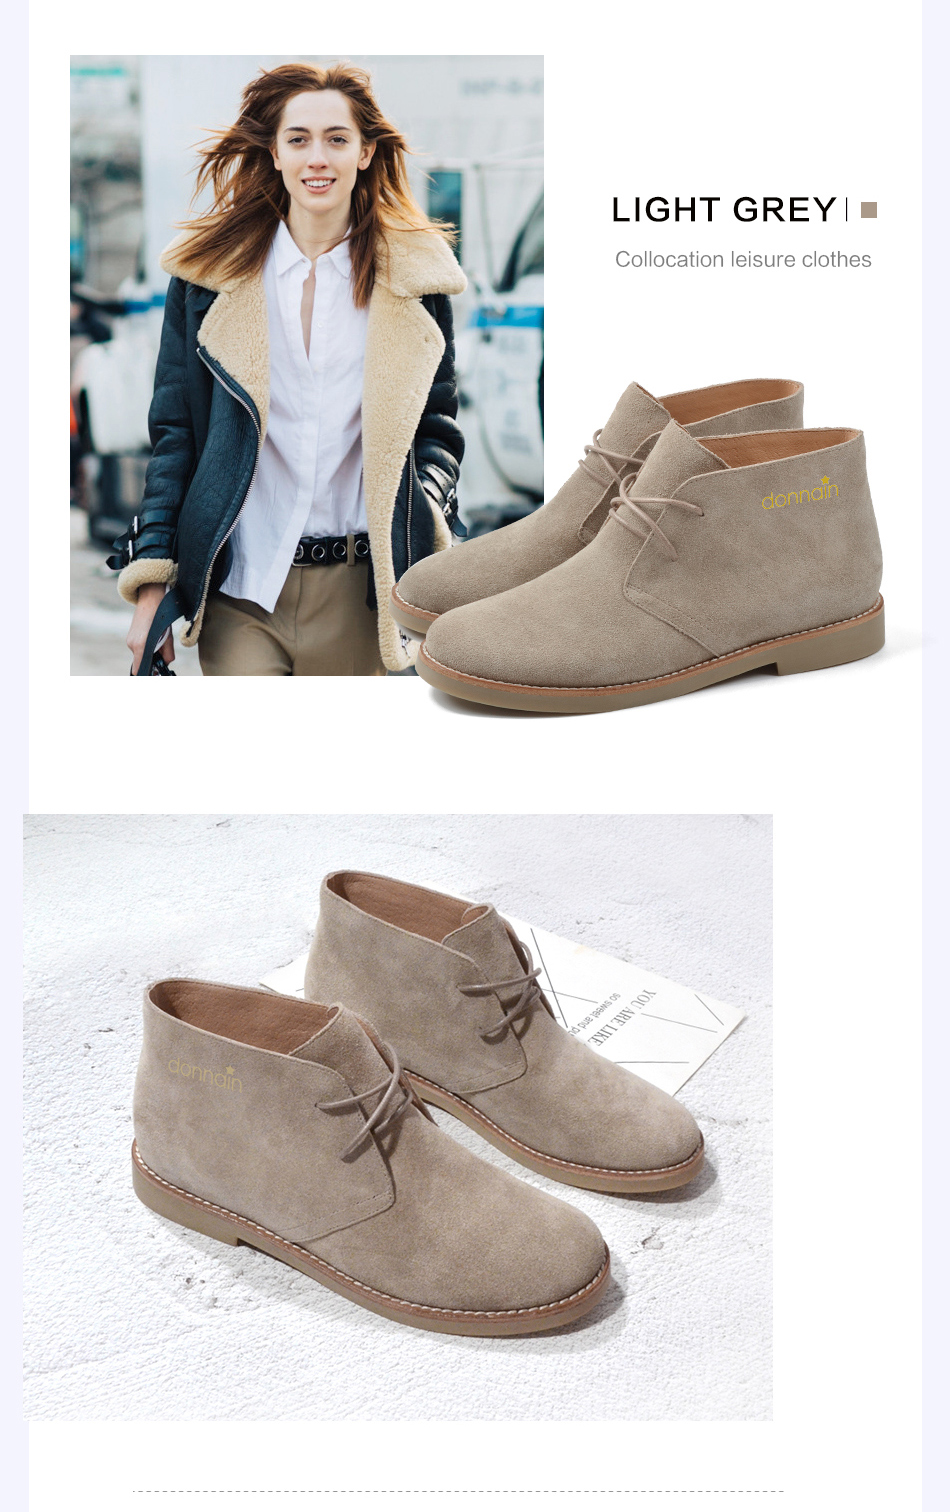 Donna-in Fashion Martin Boots Women Adult Autumn Spring 2019 Ankle Boots Suede Leather Lace-up Casual Low Heel Shoes Women (17)